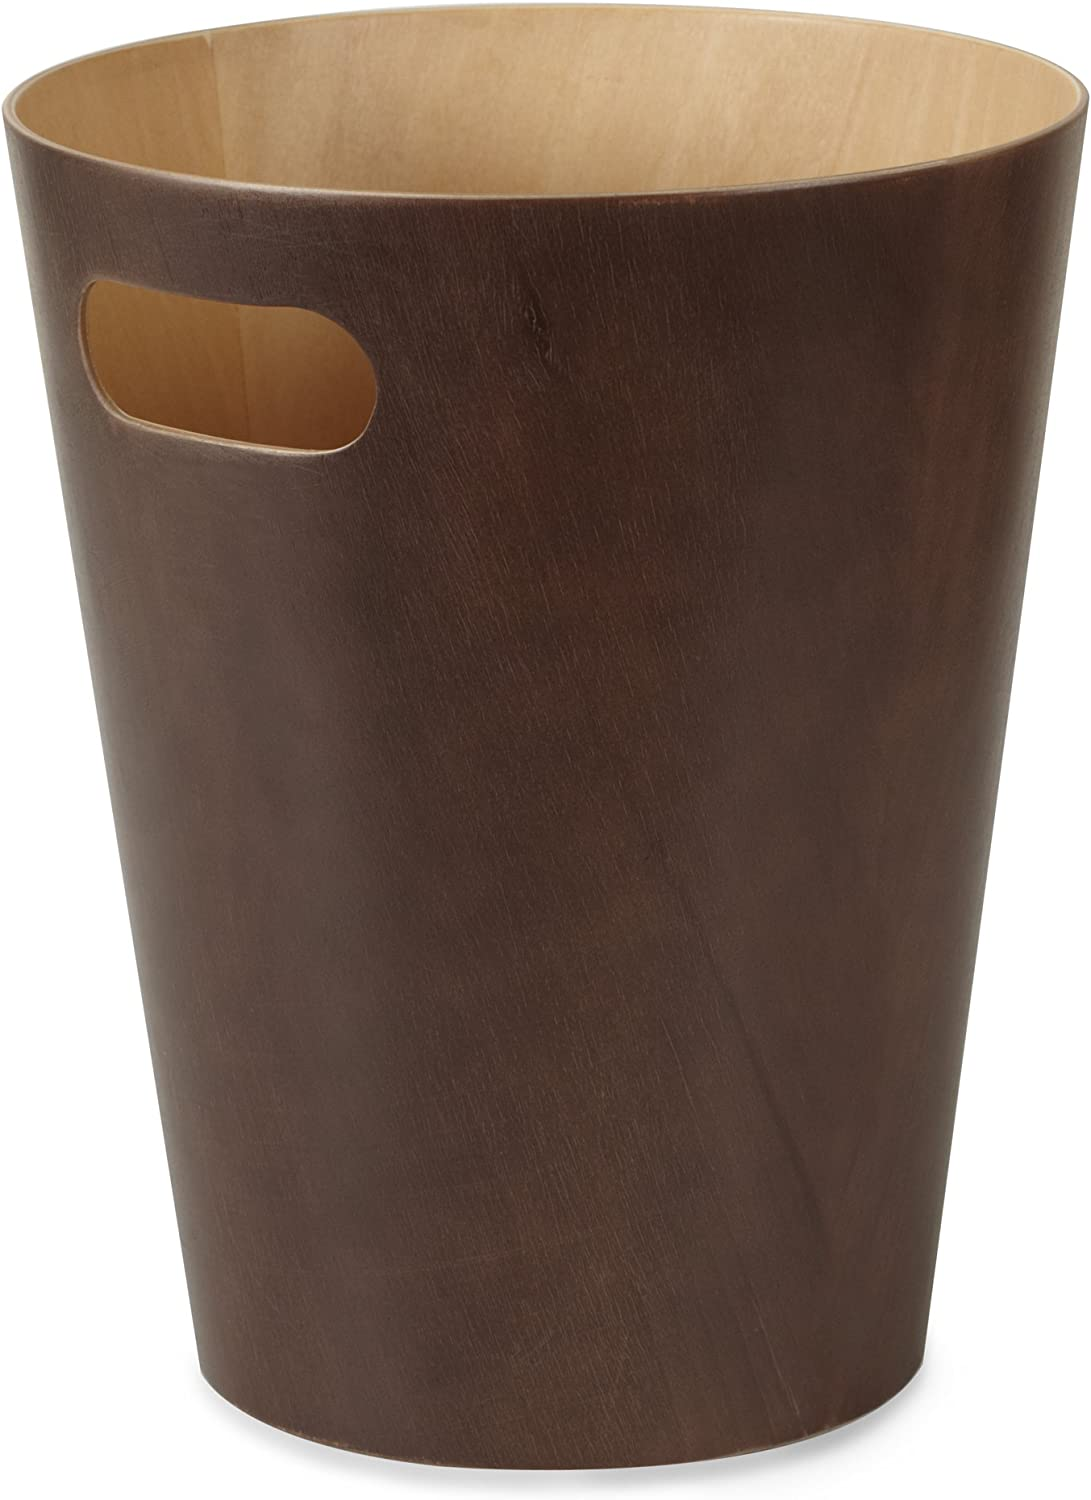 Umbra Woodrow, 2 Gallon Modern Wooden Trash Can Wastebasket or Recycling Bin for Home or Office, Espresso